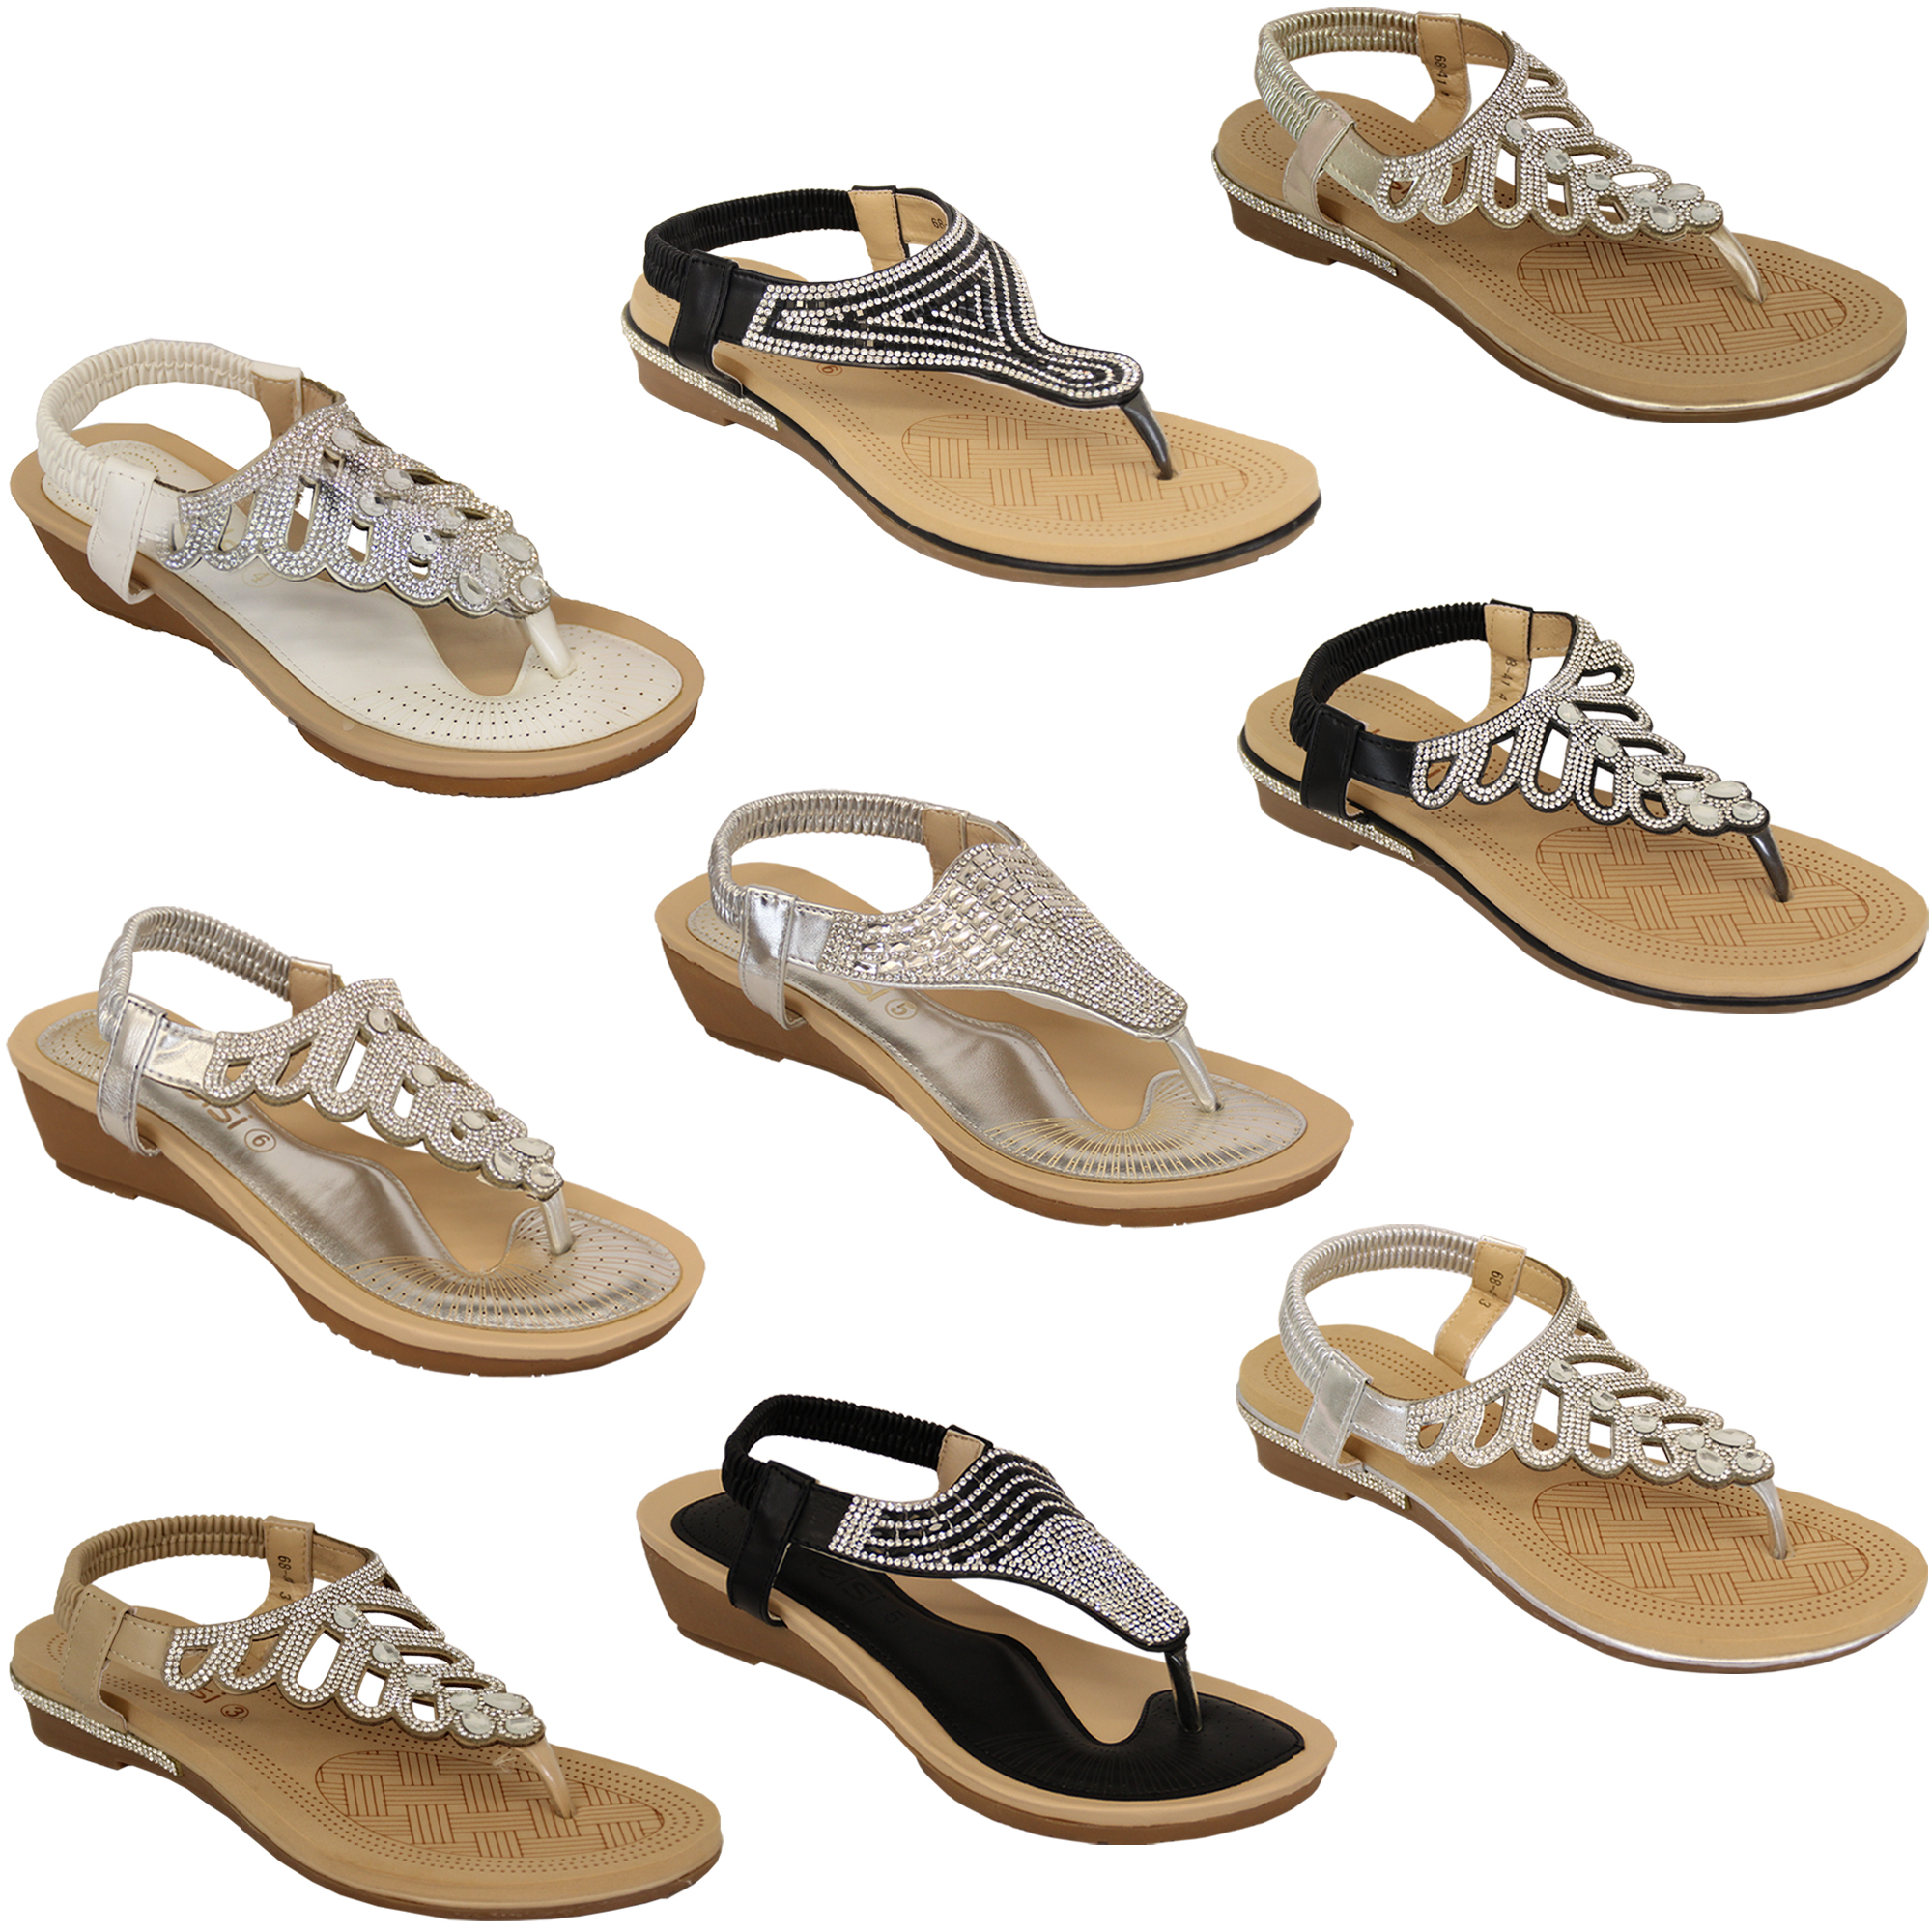 Ladies-Sandals-Kelsi-Womens-Diamante-Slip-On-Toe-Post-Shoes-Casual-Fashion-New thumbnail 5